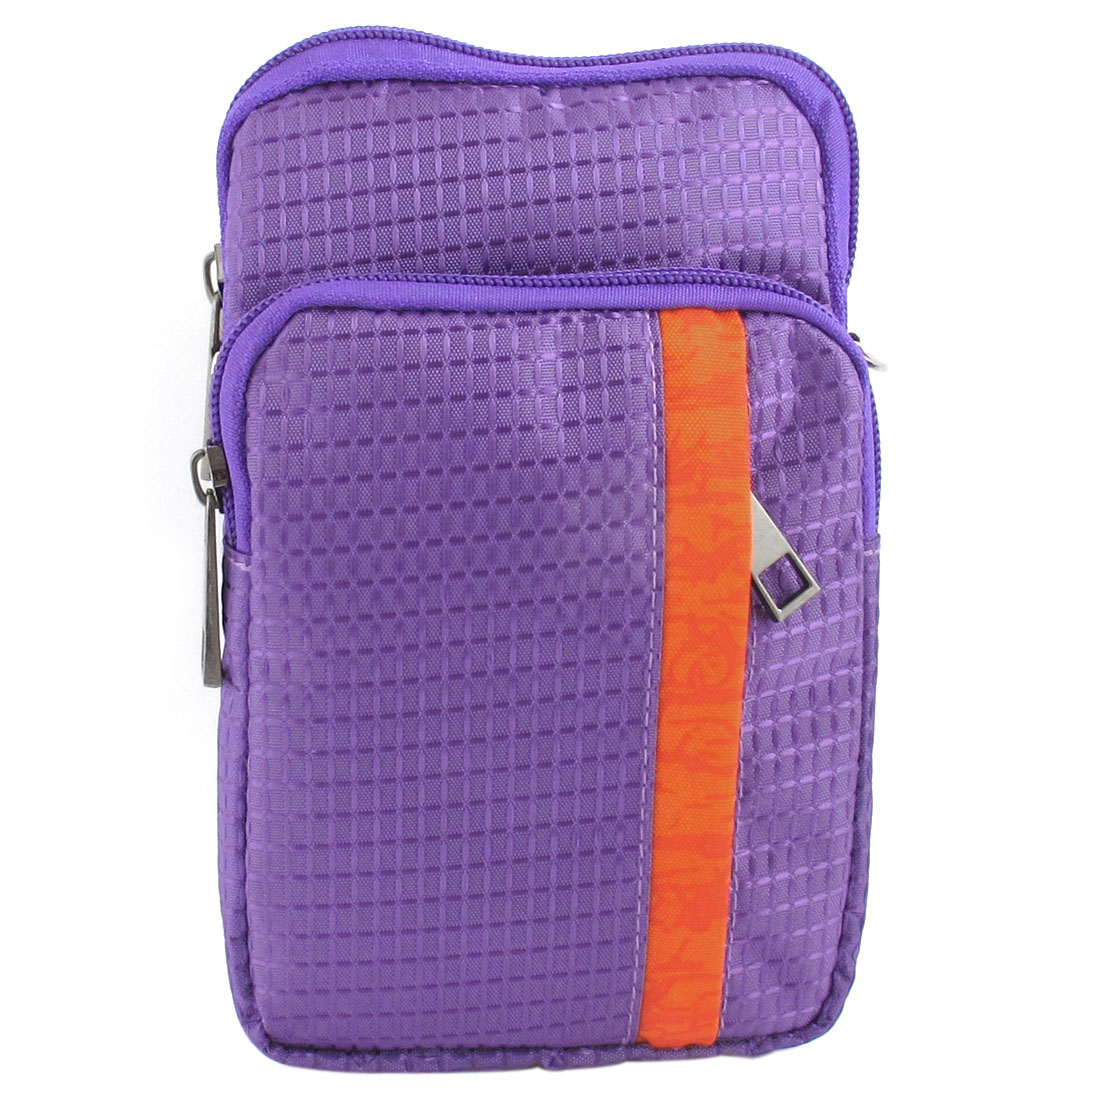 Portable Check Pattern Vertical Bag Pouch Holder Purple for Smartphone MP4 Keys